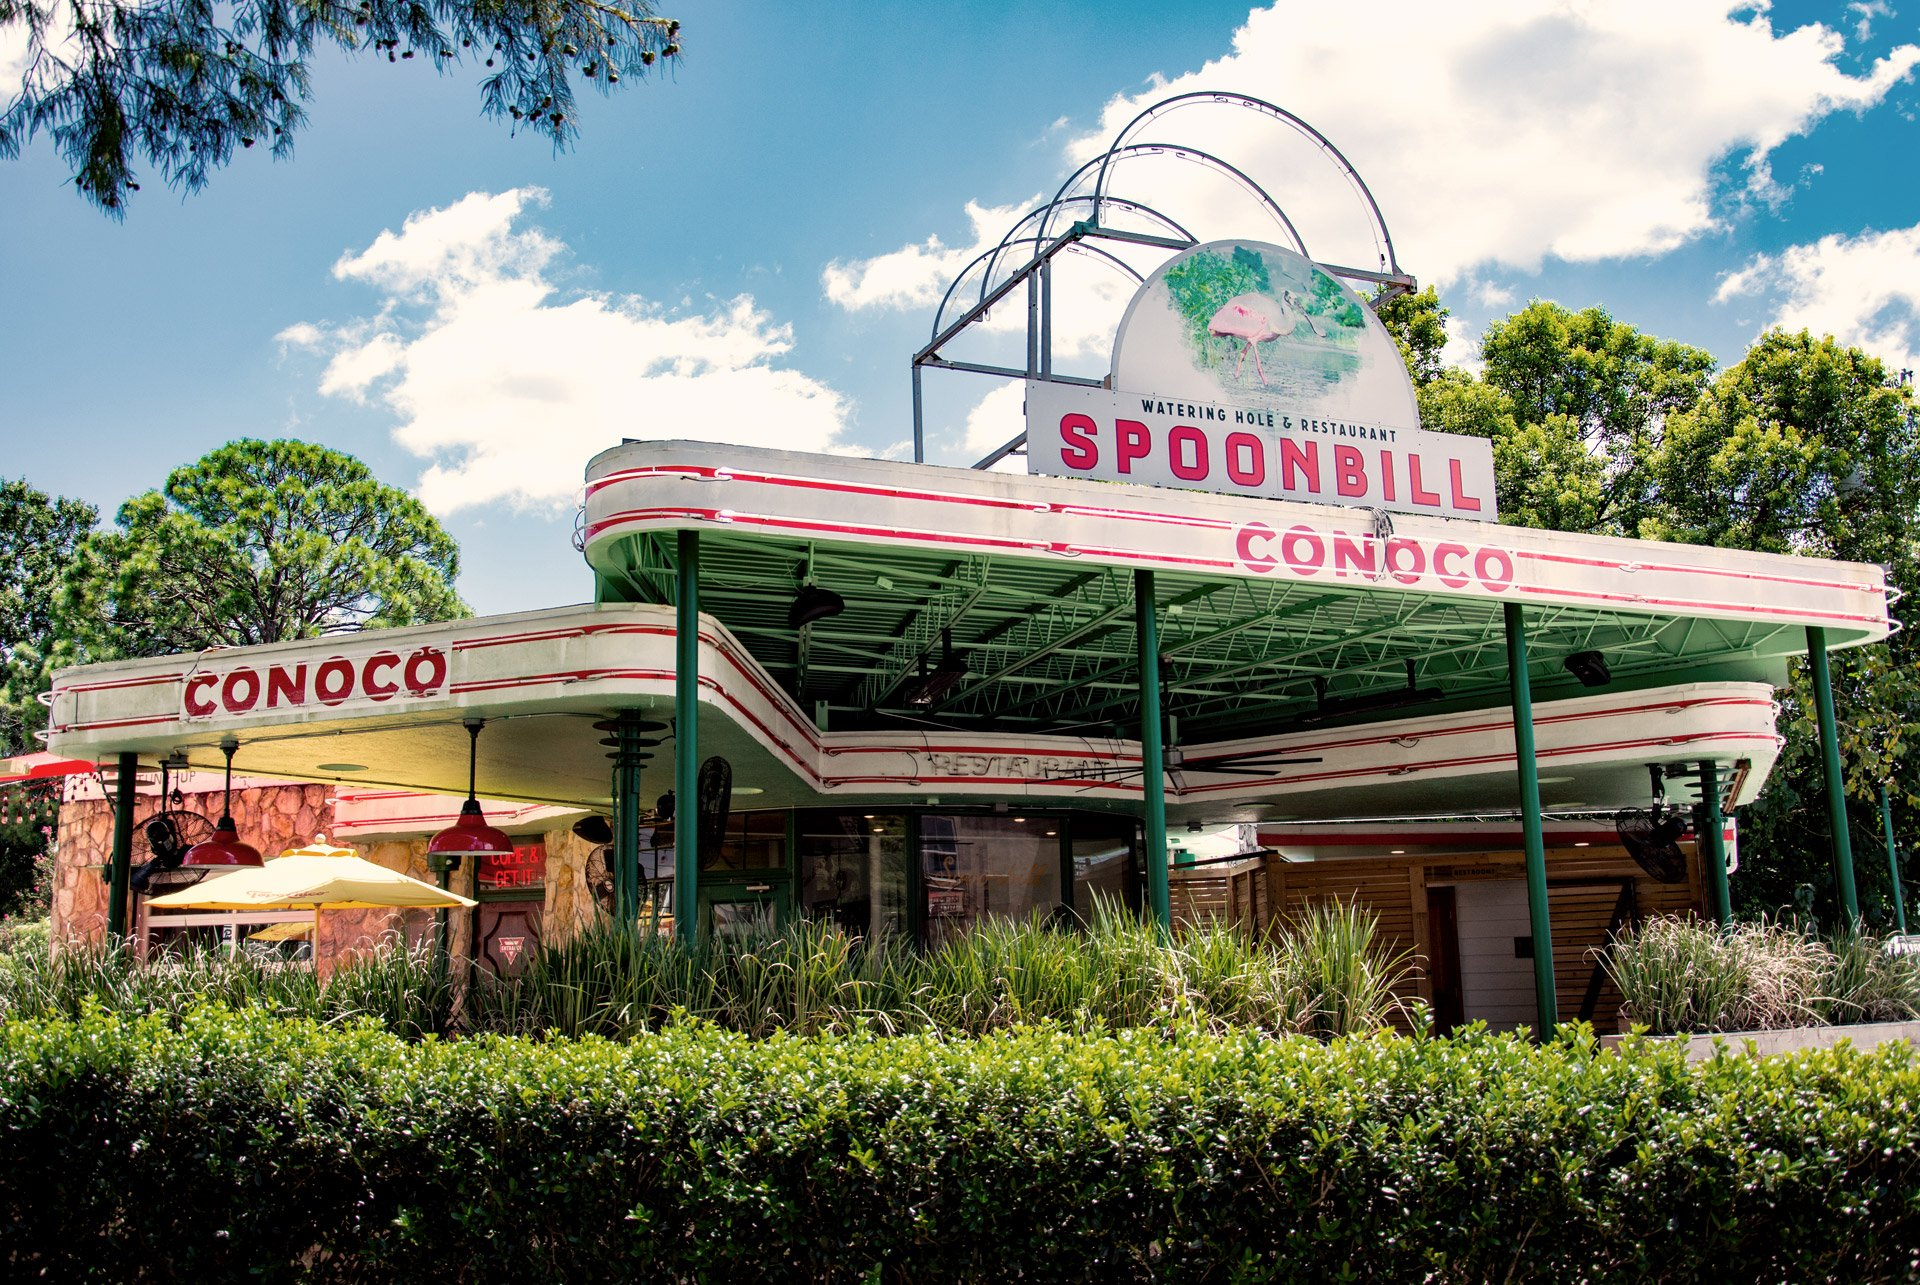 Spoonbill Watering Hole & Restaurant